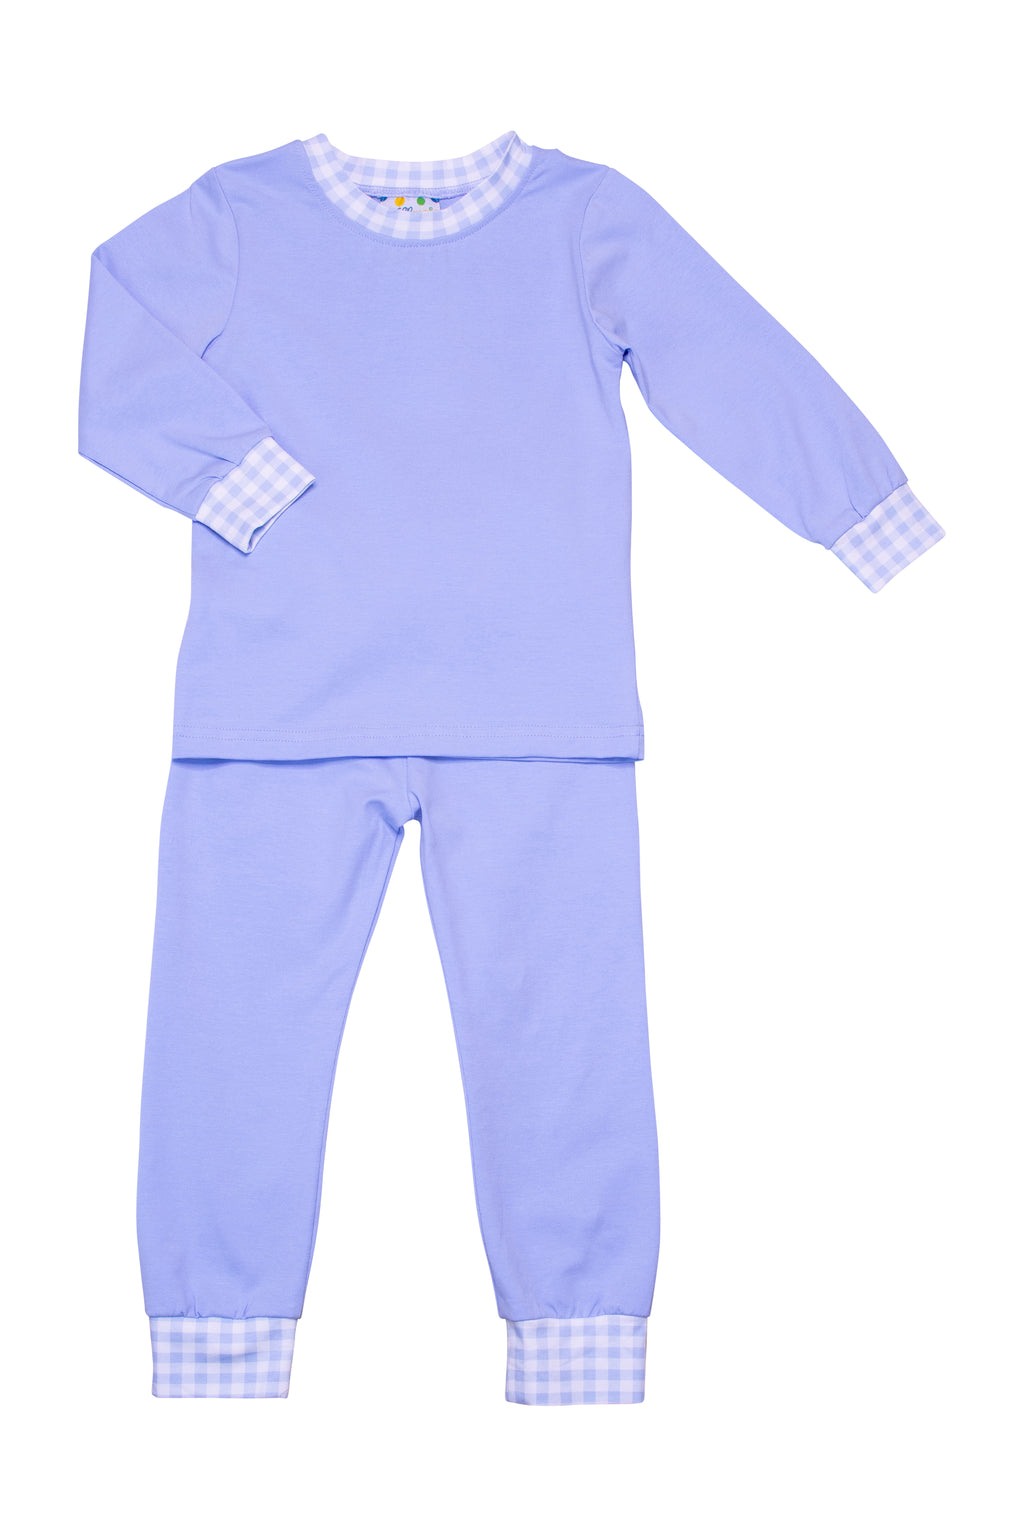 Boys Knit Blue/Check PJ